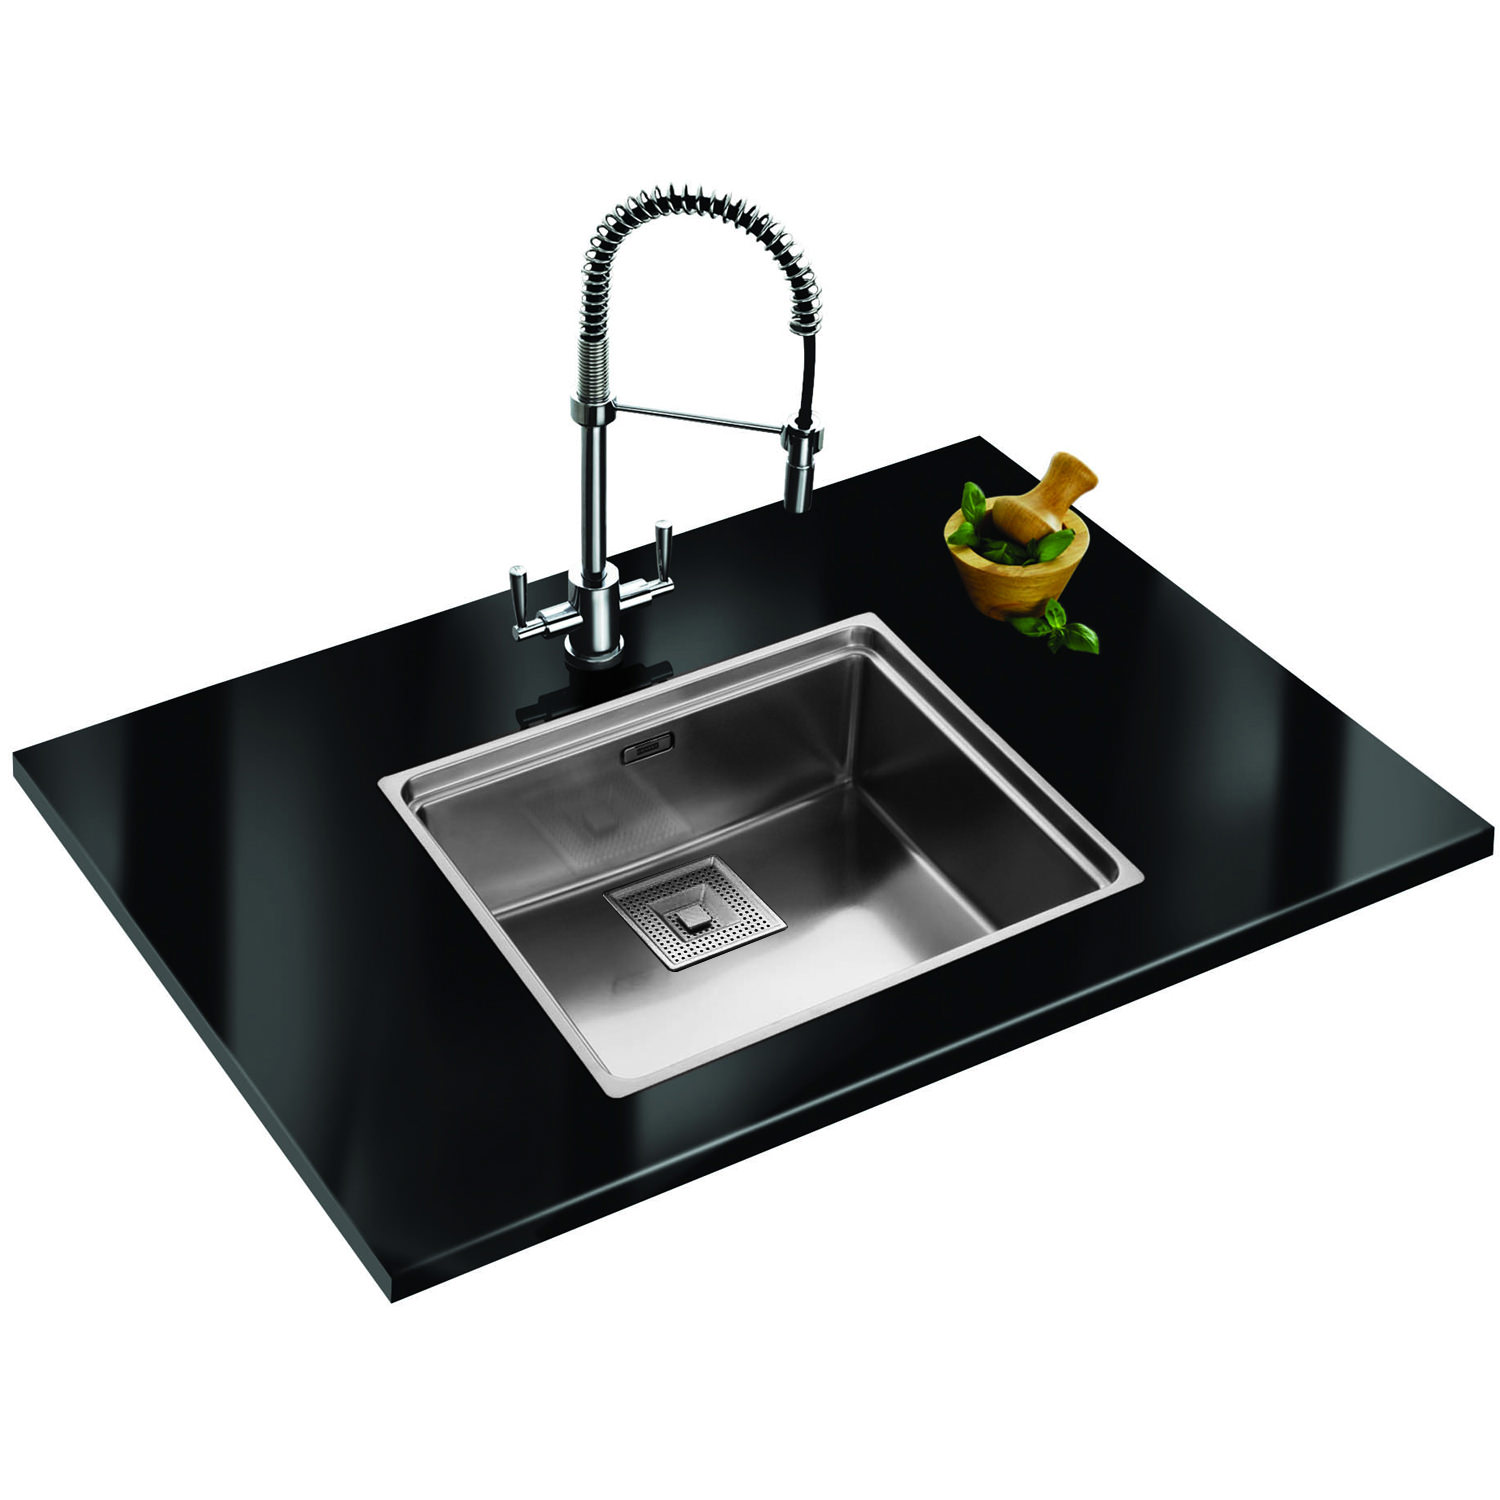 Franke centinox designer pack cex 210 stainless steel sink for Designer stainless steel sinks